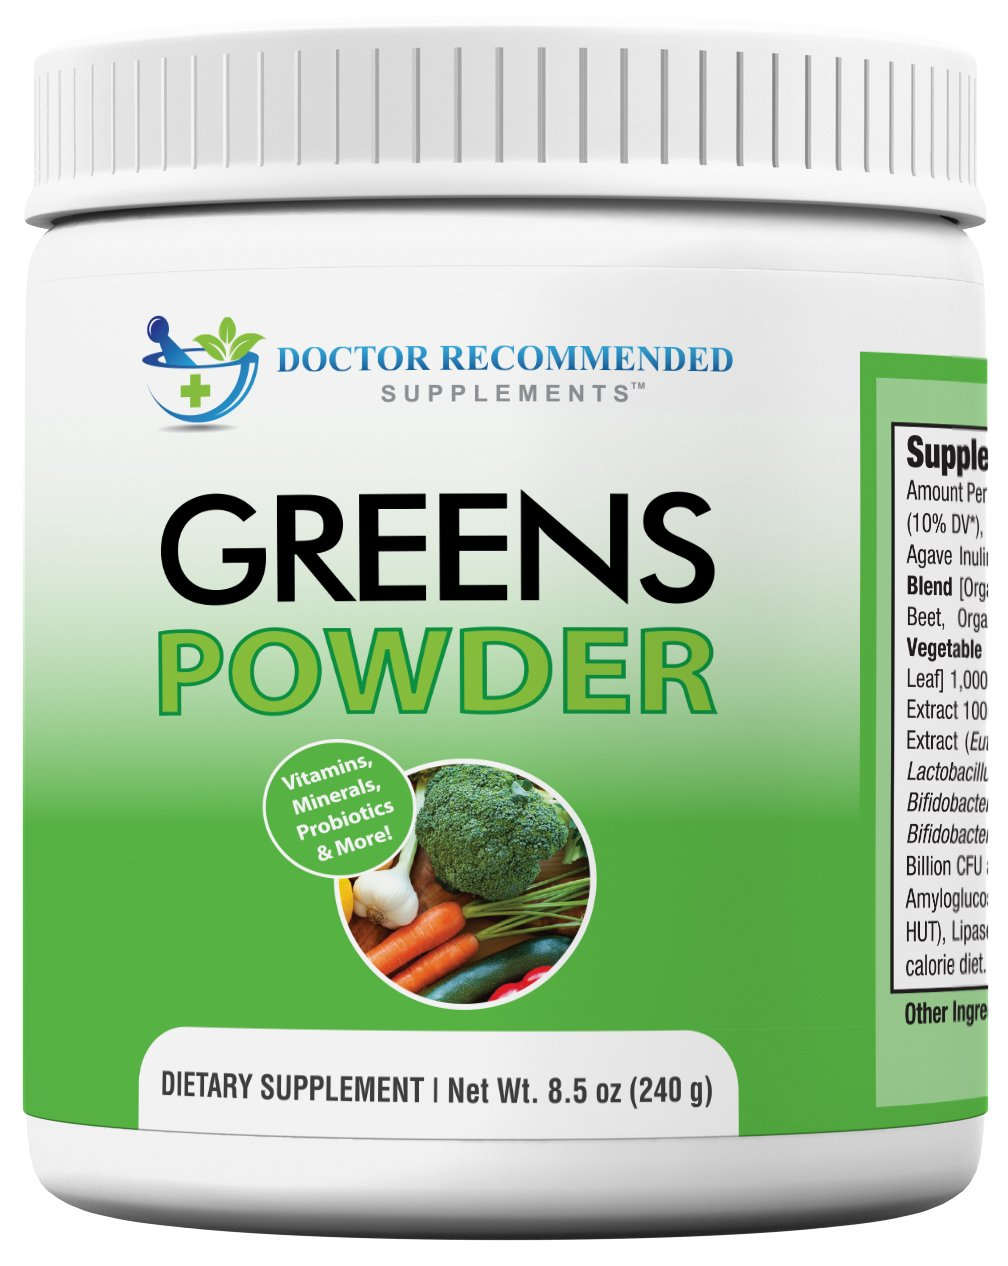 Doctor Recommended Greens Powder - Whole Food Nutritional Supplement - Probiotics and Digestive Enzymes - Berry Taste - Gluten-Free, Non-GMO, Dairy-Free, Caffeine-Free, No Artificial Sweeteners by DOCTOR RECOMMENDED SUPPLEMENTS